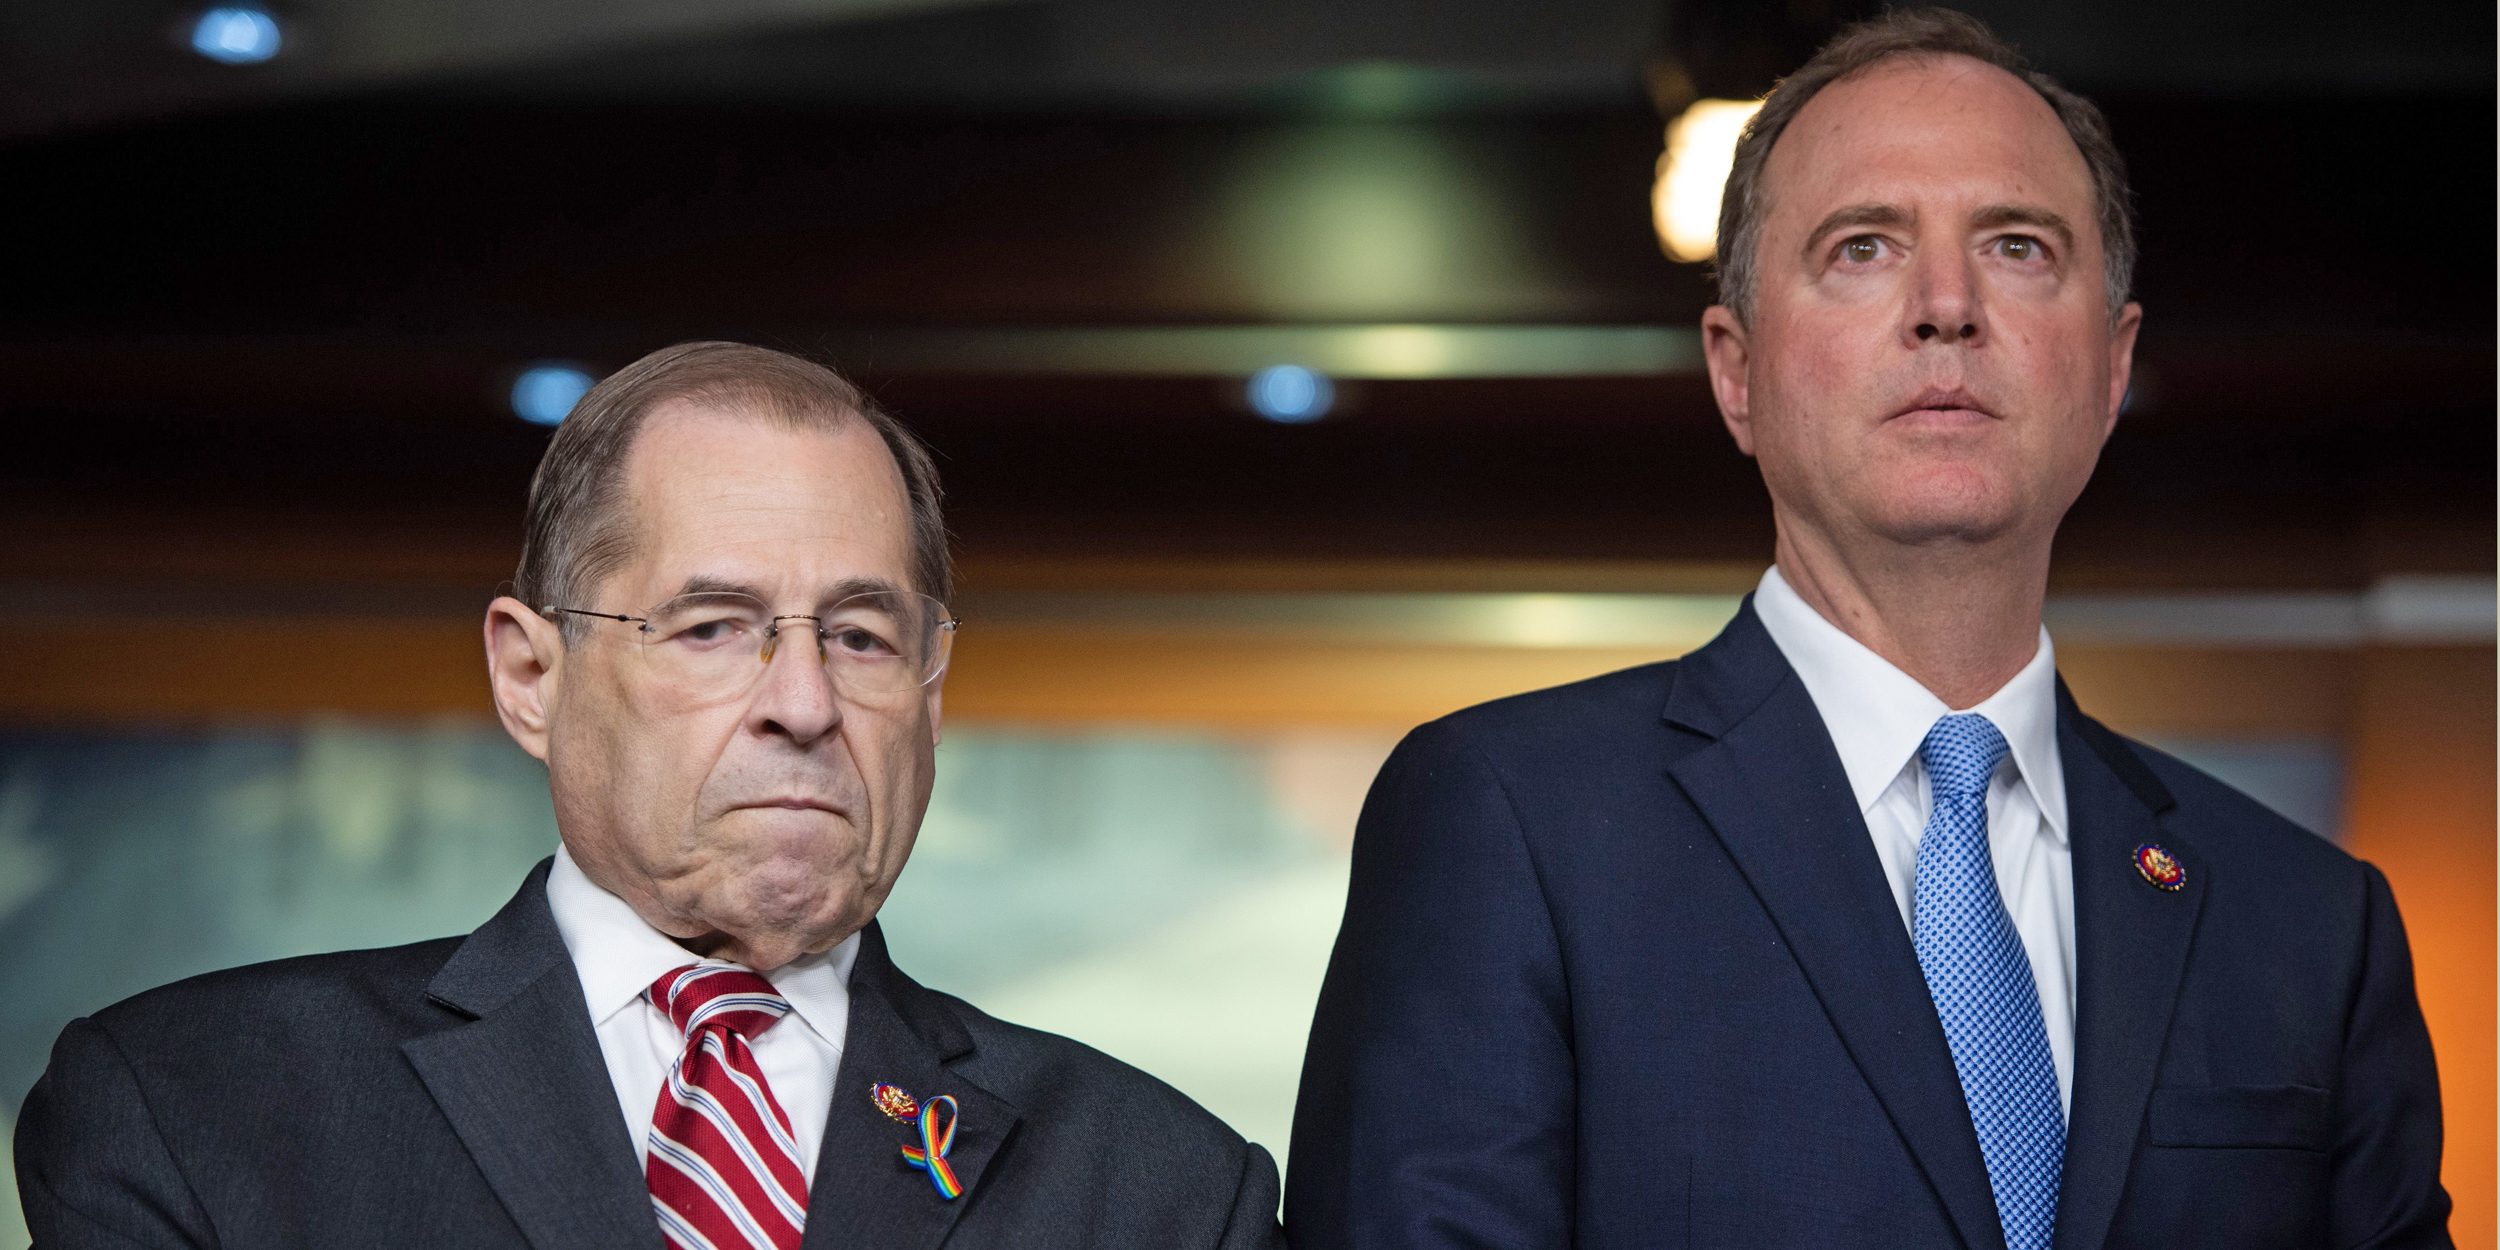 Read: Democrats split on whether to include Mueller obstruction in articles of impeachment